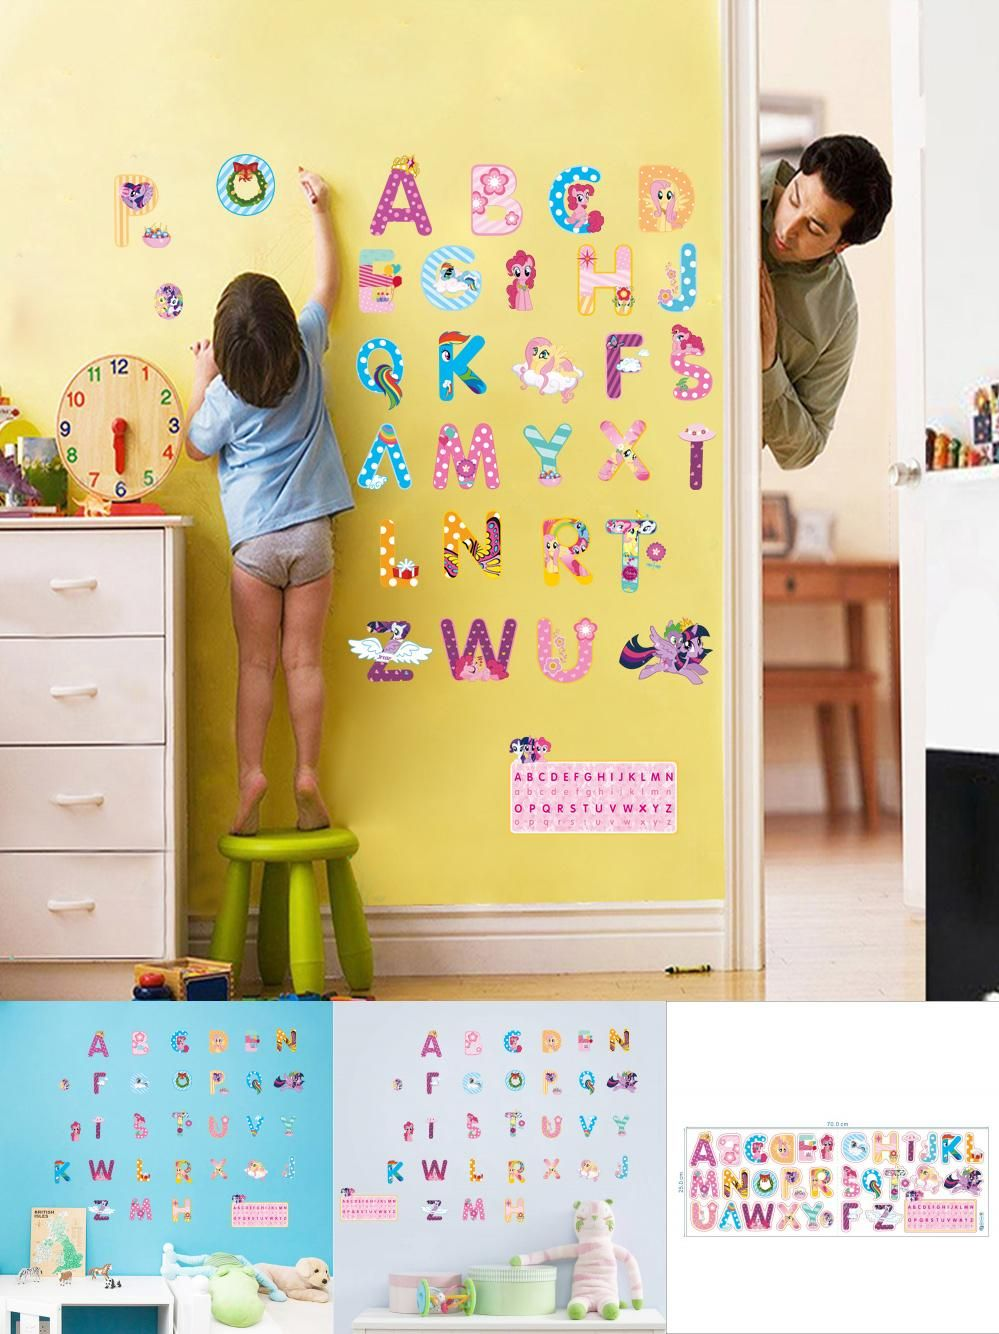 Visit to Buy] my little pony alphabet cartoon letters wall ...